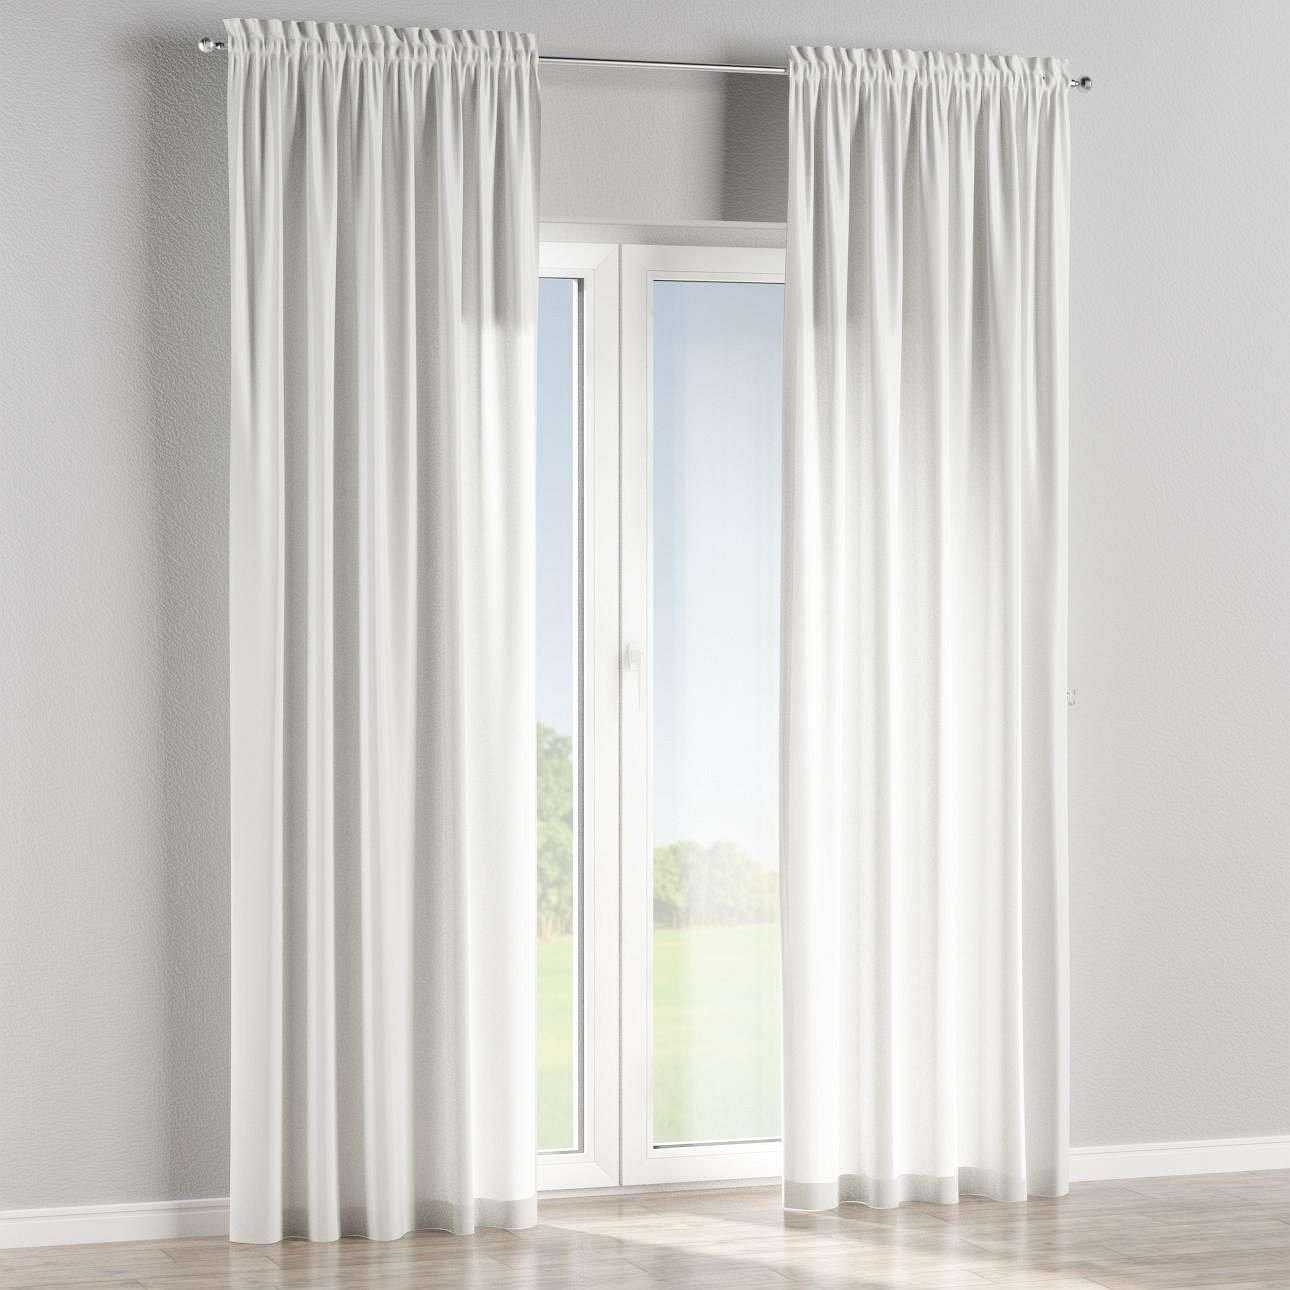 Slot and frill lined curtains in collection Flowers, fabric: 311-10